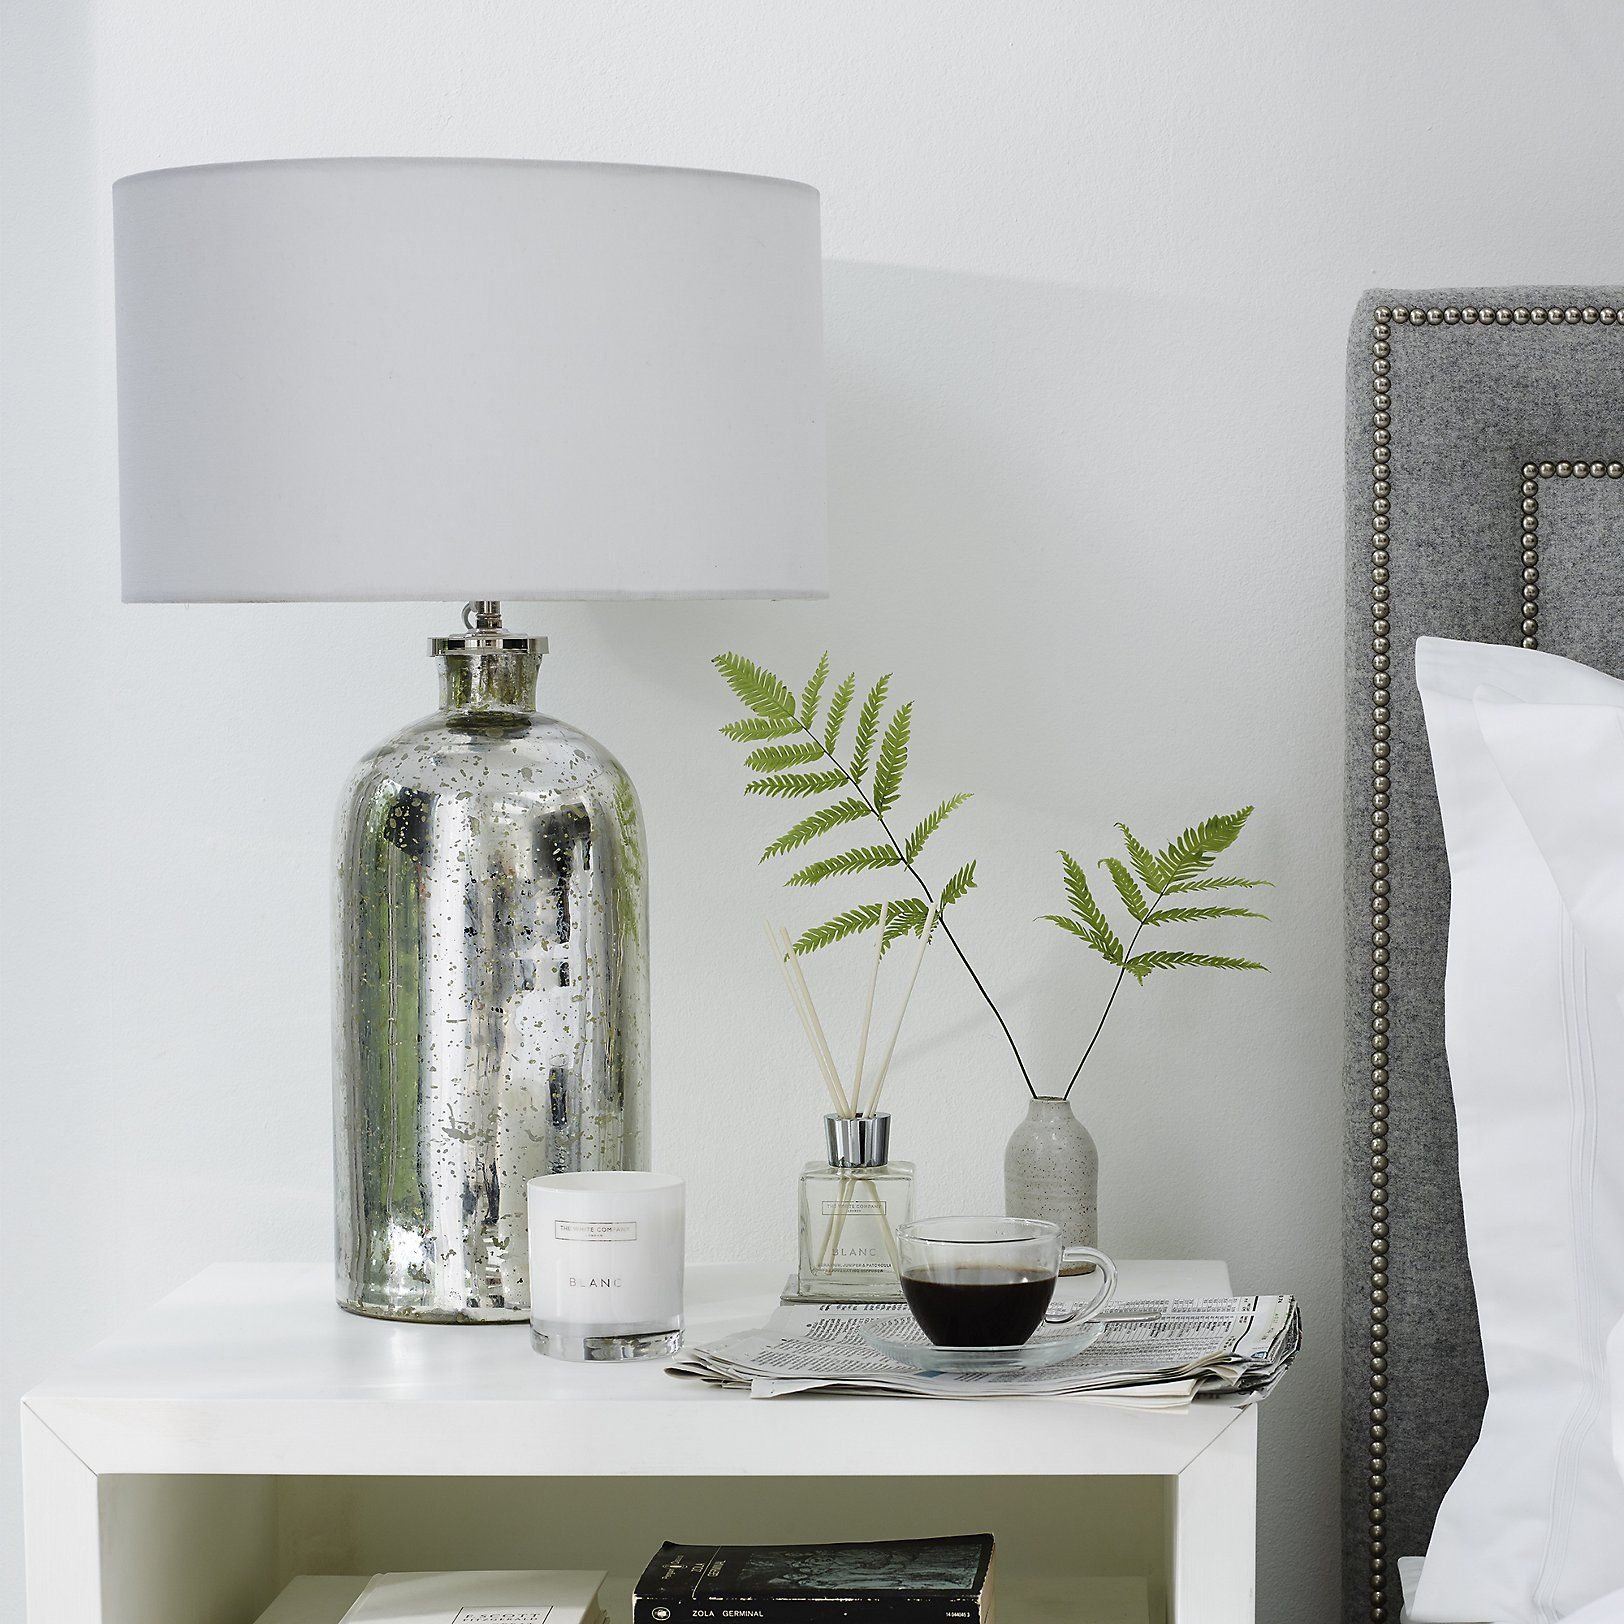 Mercury bottle table lamp table lamps home accessories home this fabulous big table lamp is a real statement piece for your living room hallway or office hand made in india the lamp features a large white linen geotapseo Image collections